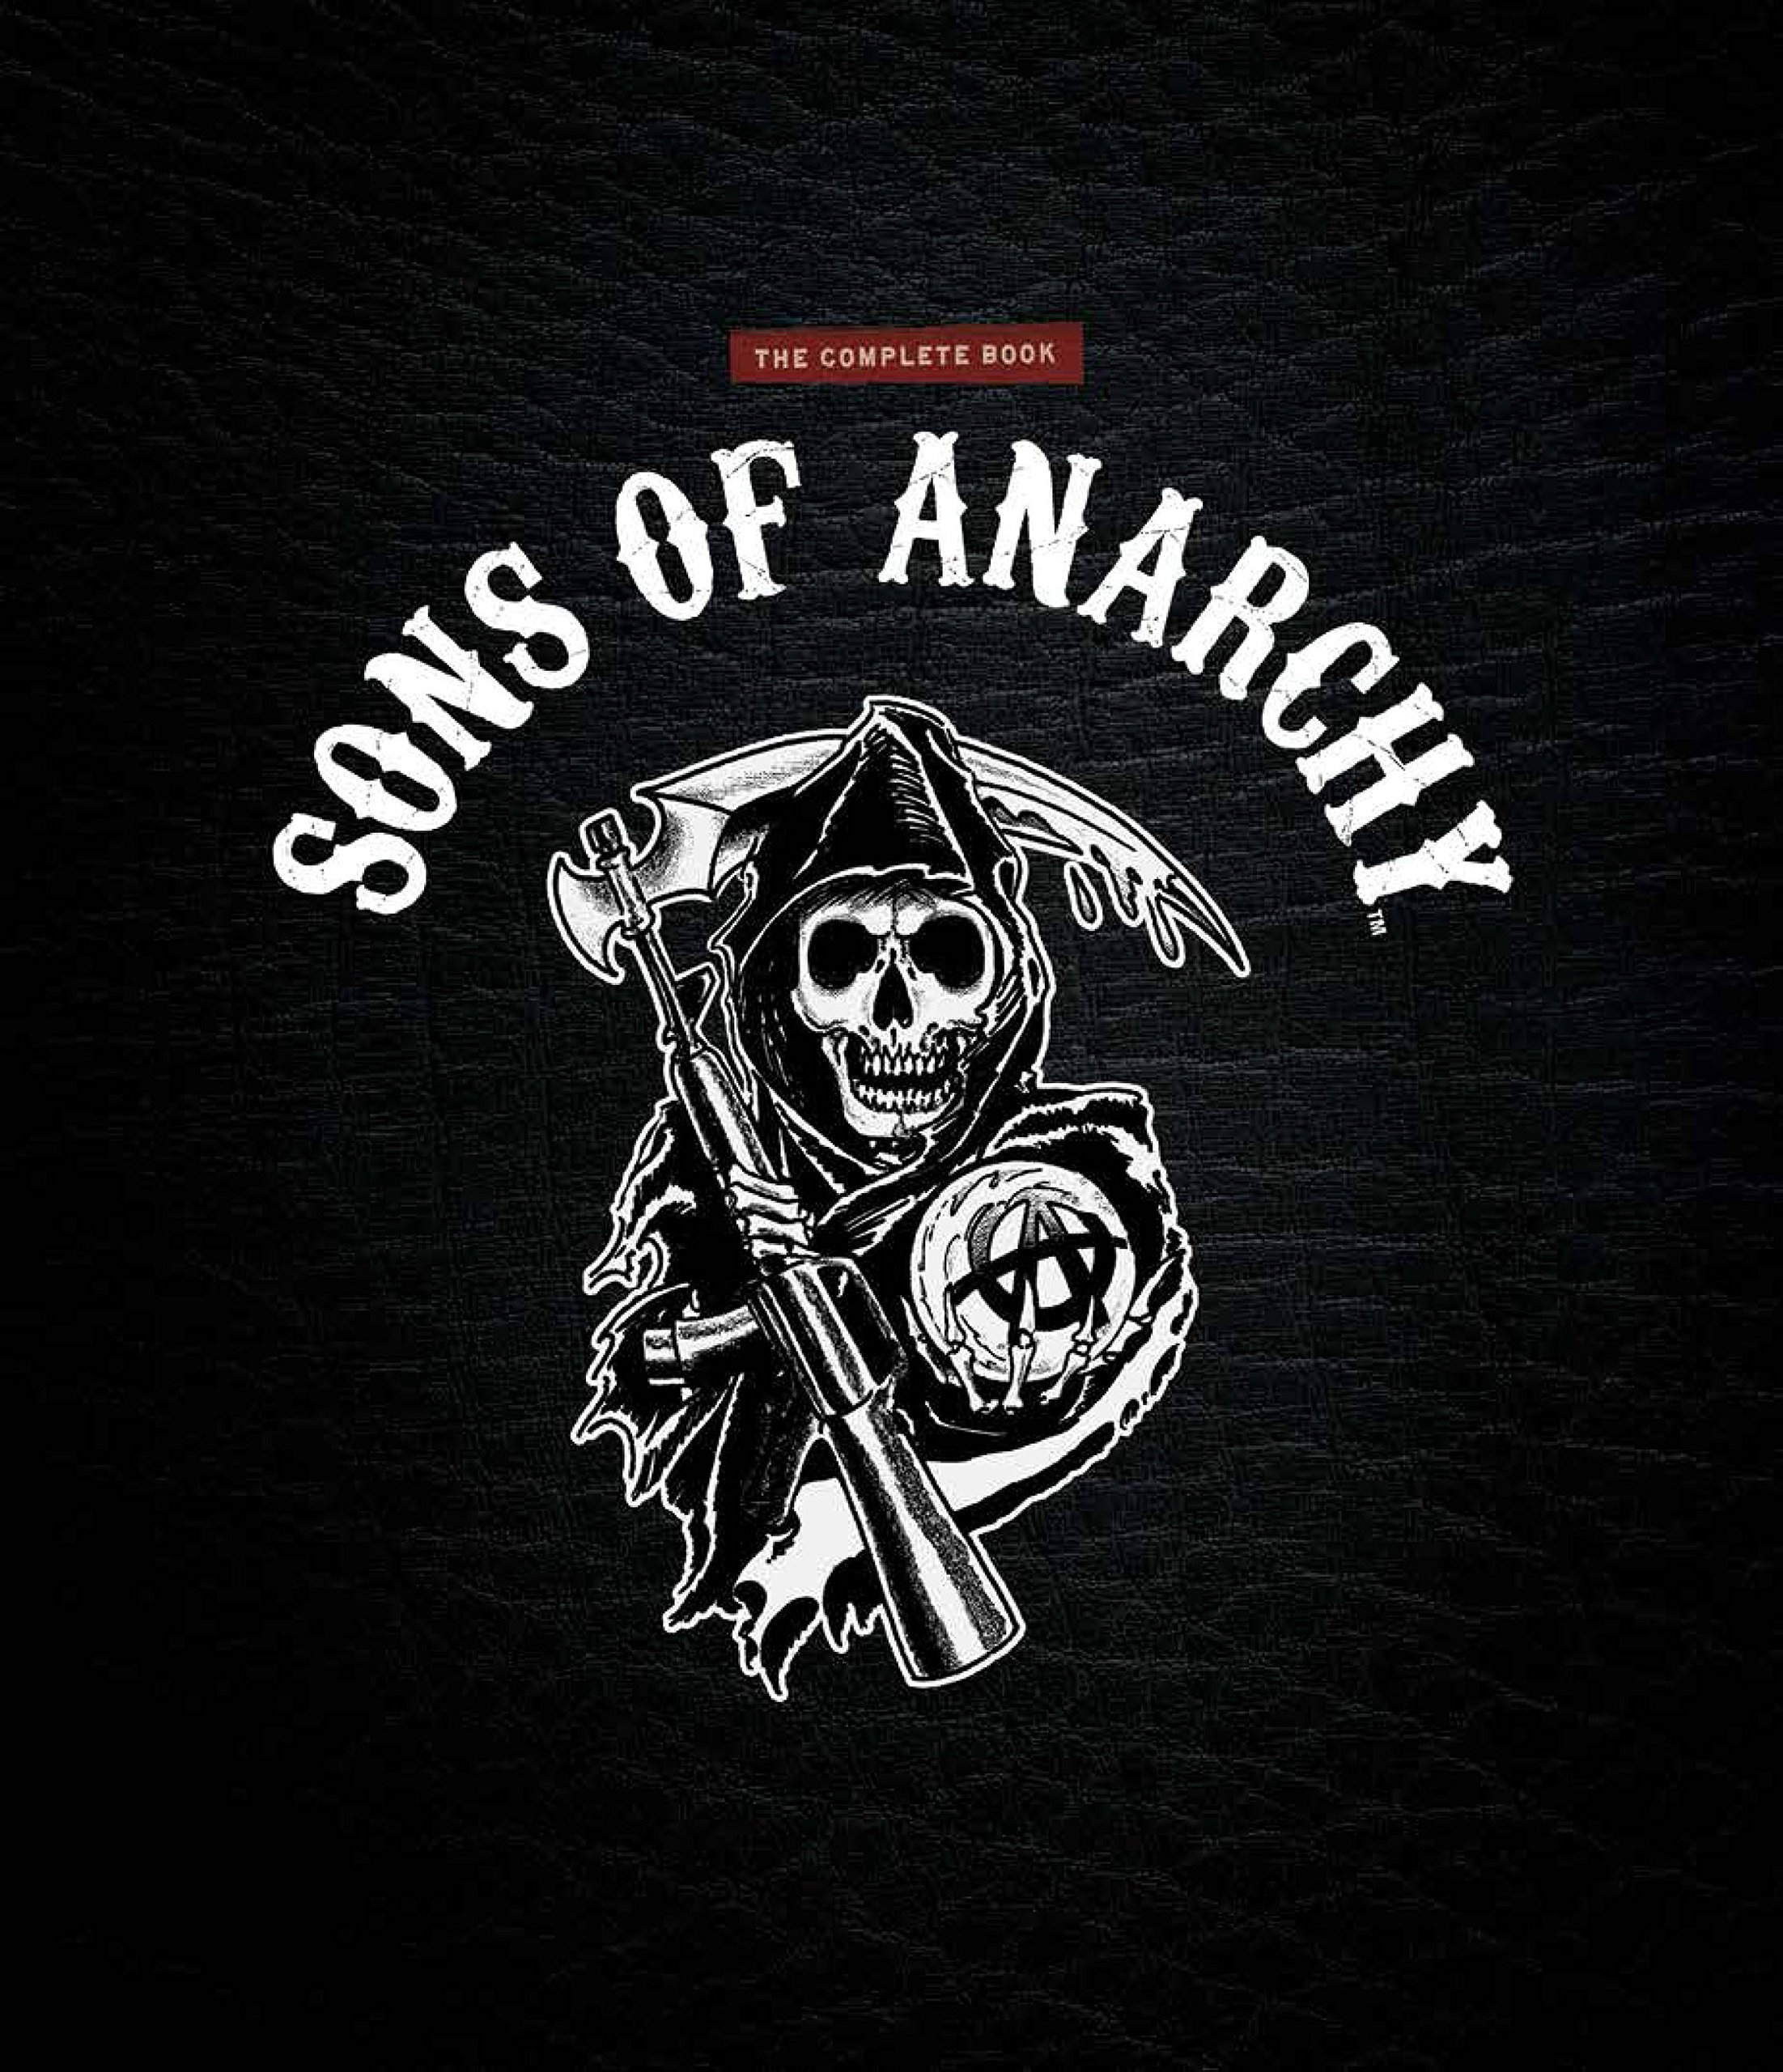 Sons of anarchy dvd set amazon